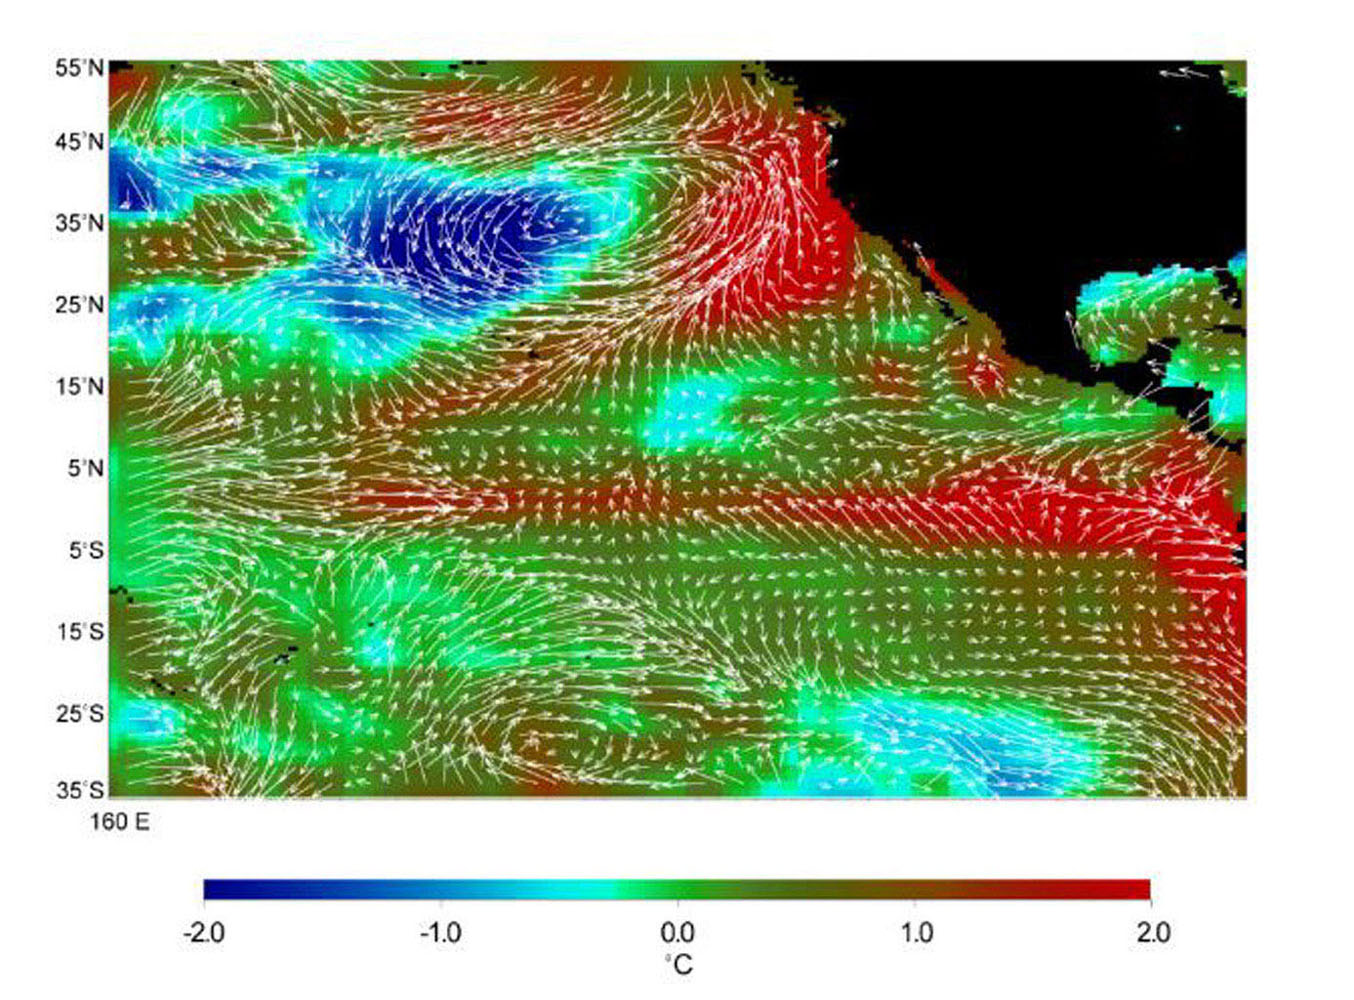 This image displays wind measurements taken by the satellite-borne NASA Scatterometer (NSCAT) during the last 10 days of May 1997, showing the relationship between the ocean and the atmosphere at the onset of the 1997-98 El Niño condition.